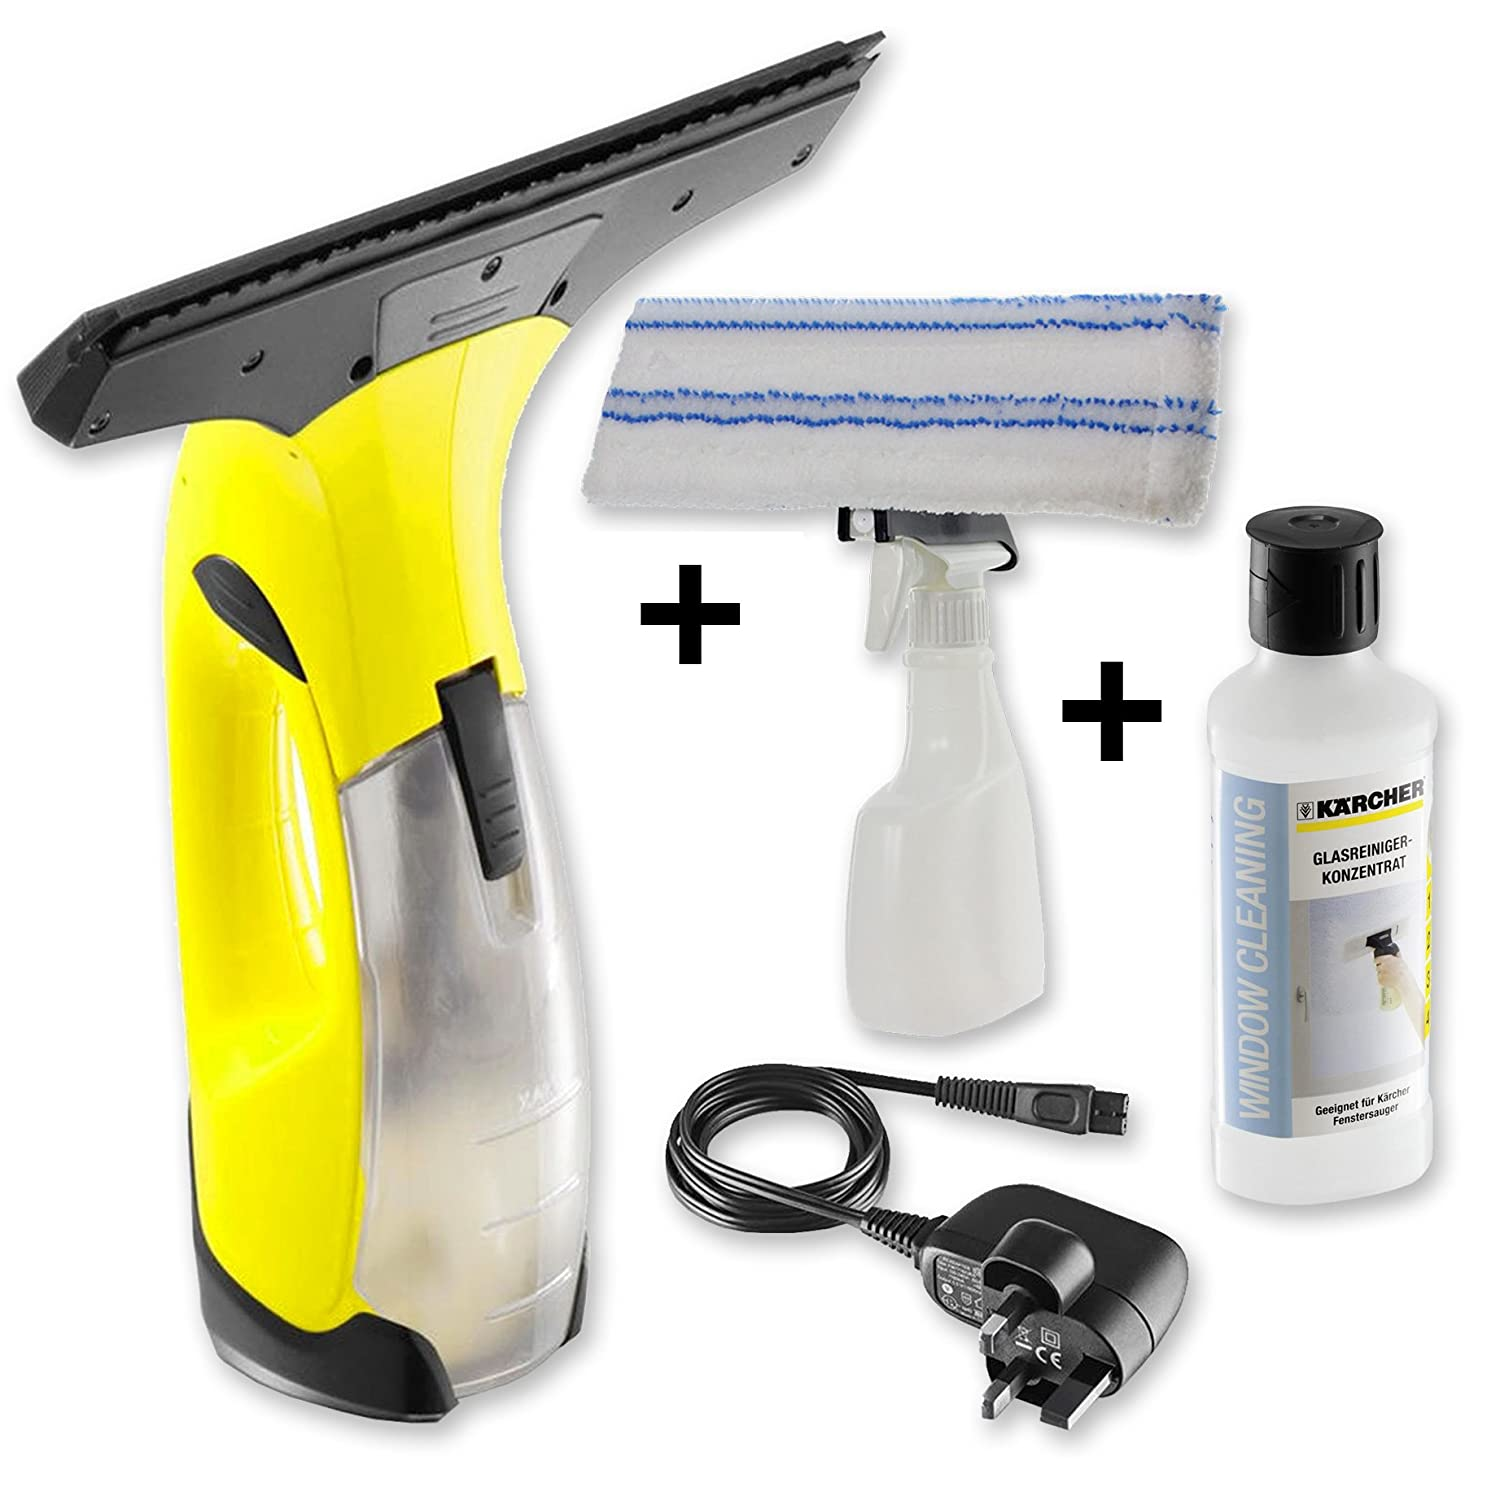 Kä rcher WV2 Window Vacuum Cleaner + Karcher Cleaning Fluid + SPARES2GO Spray Bottle Scrub Pad Kit Karher